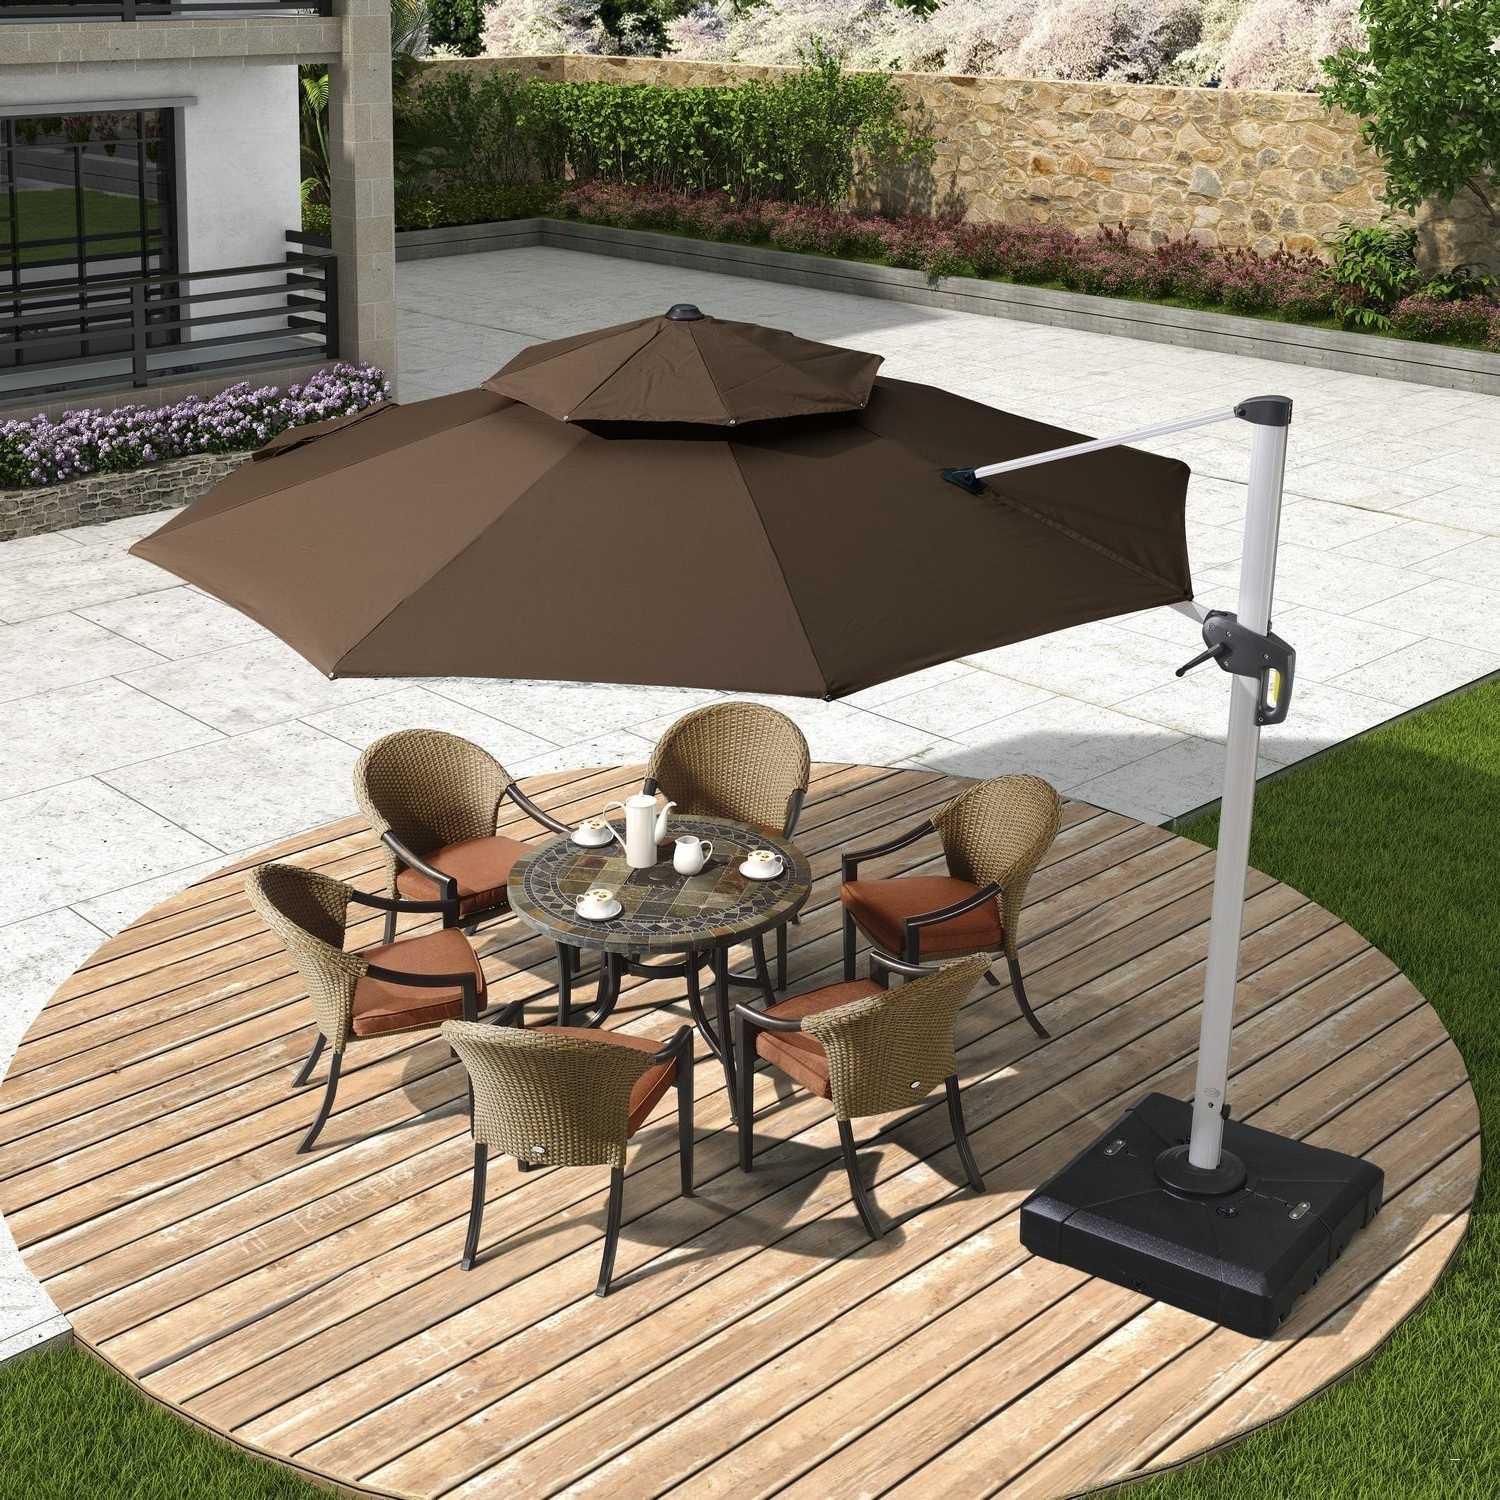 Amazon Patio Umbrellas Regarding Fashionable Patio Umbrellas Amazon – Nice 50 Expensive Summer Winds Patio (View 4 of 20)